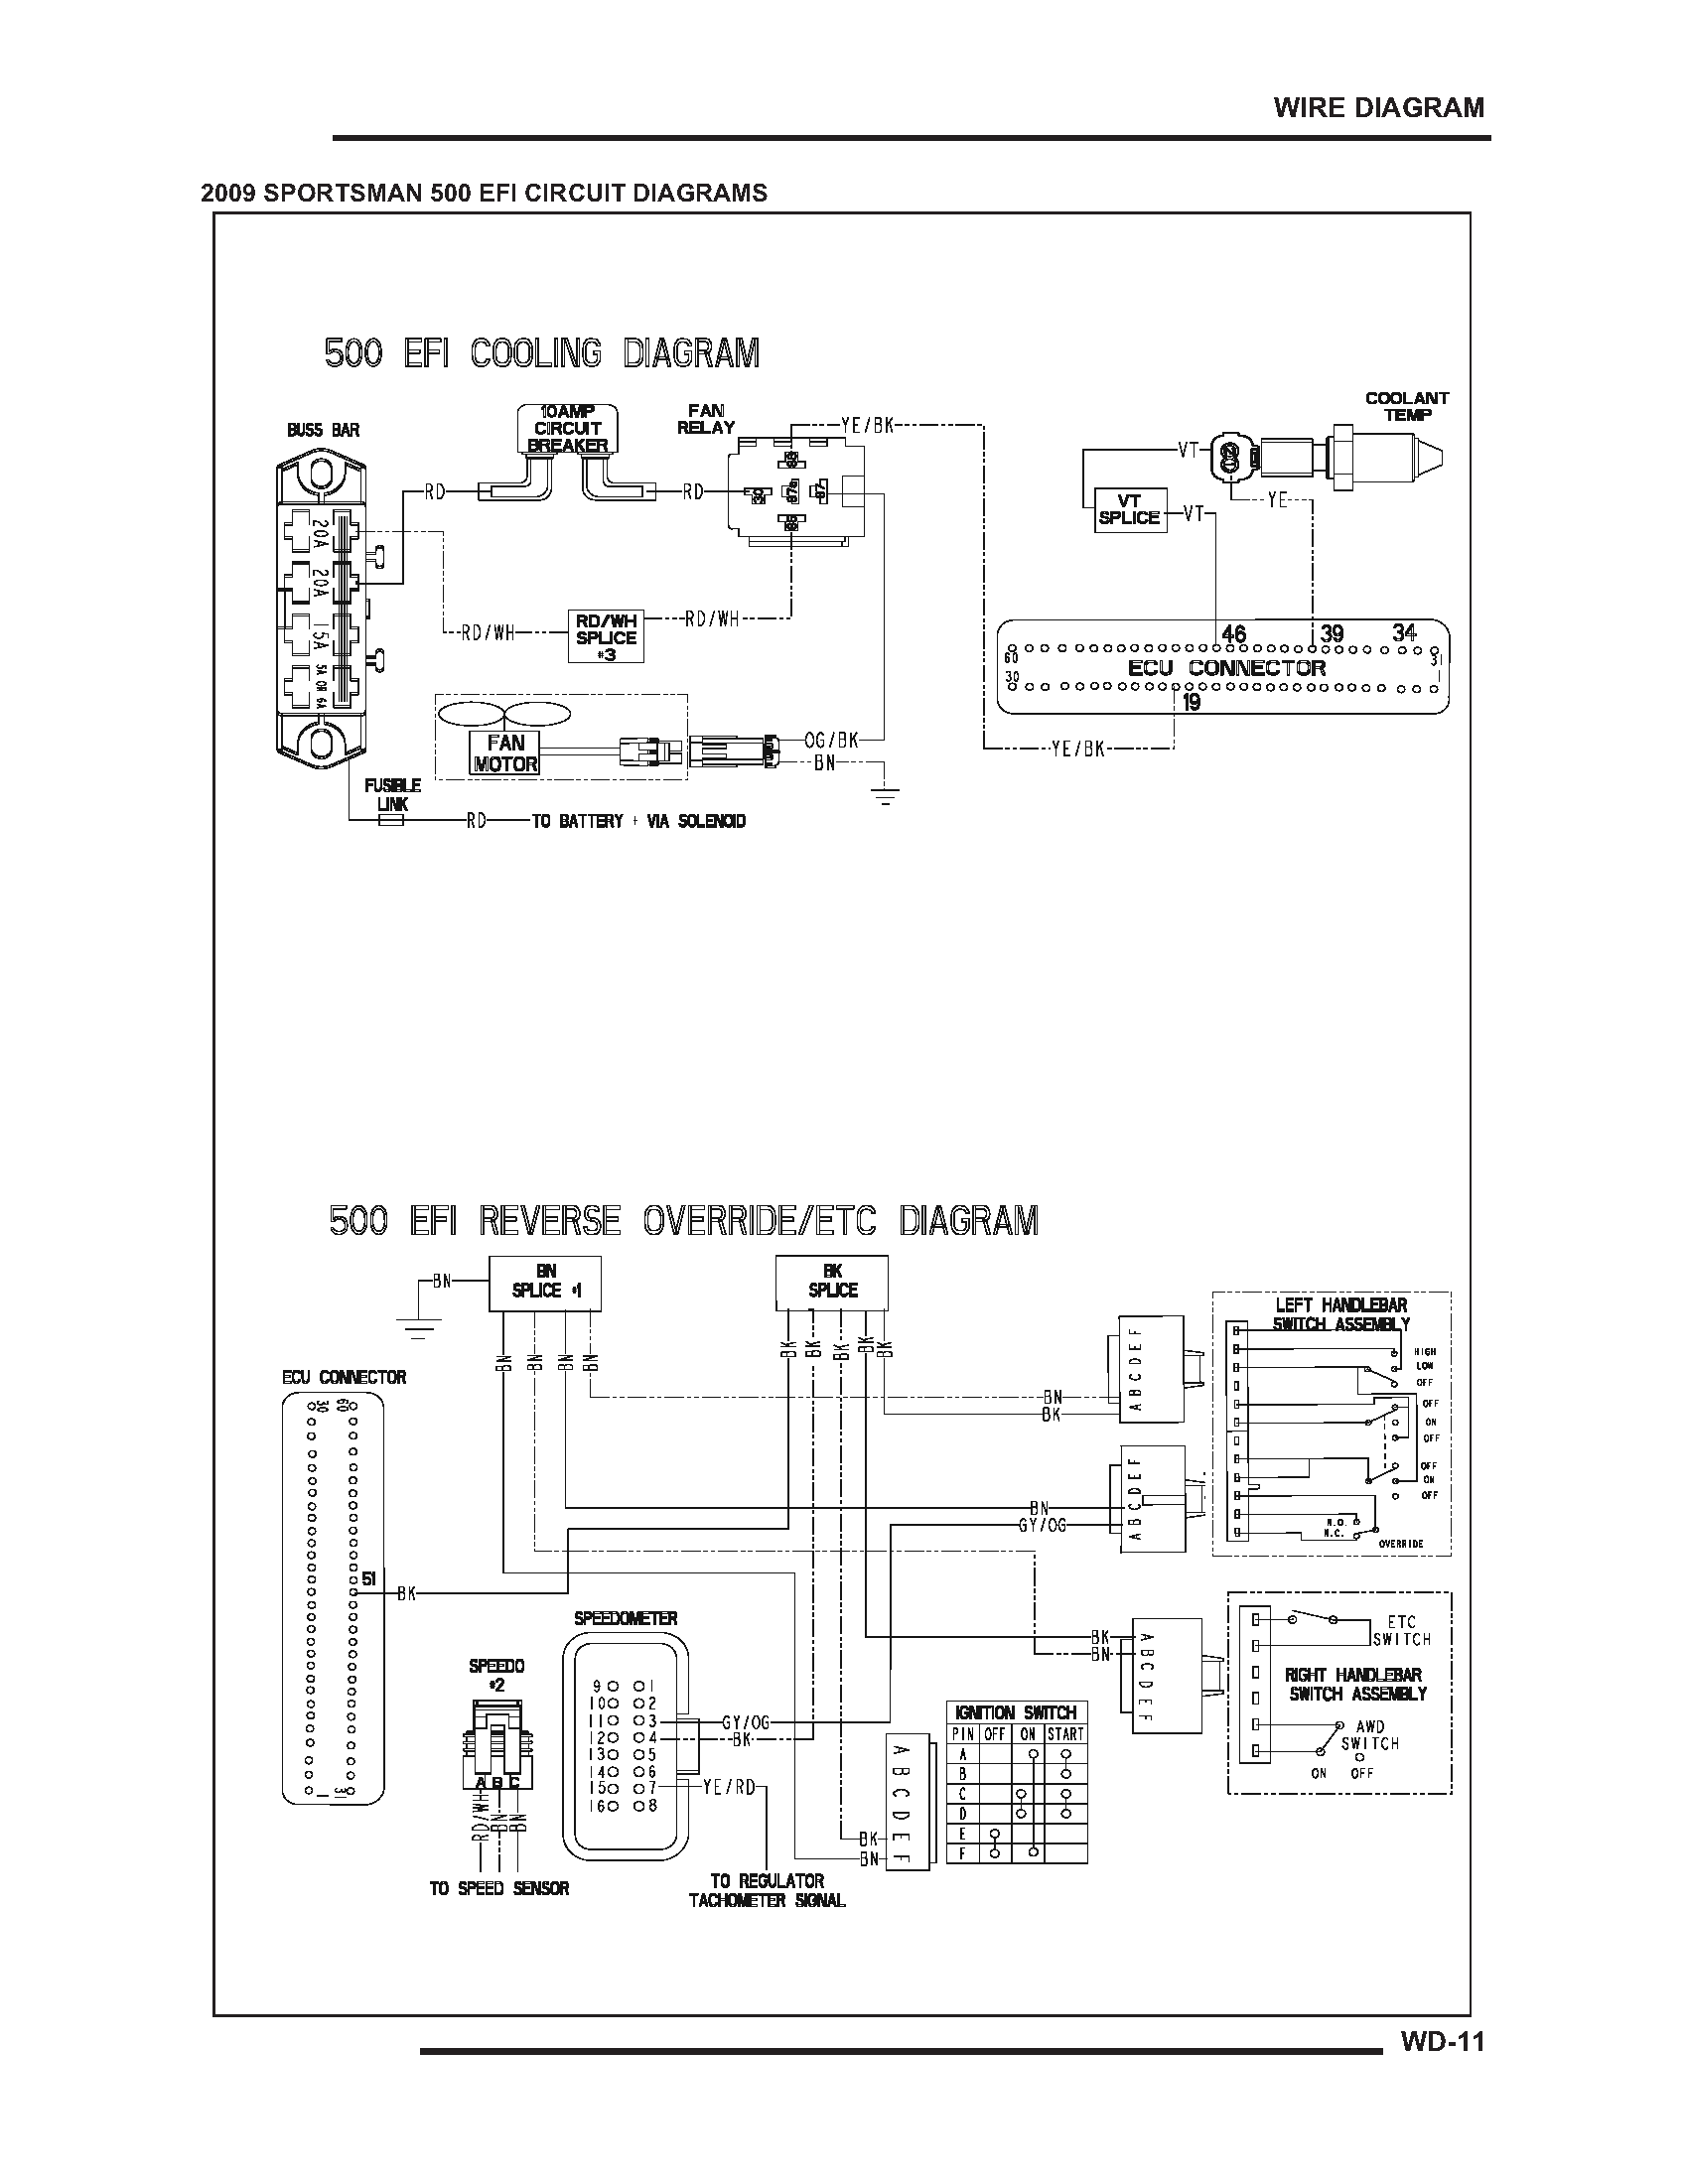 2009 sportsman 500 wiring diagram cooling system - polaris atv forum polaris sportsman 500 wiring diagram key #13